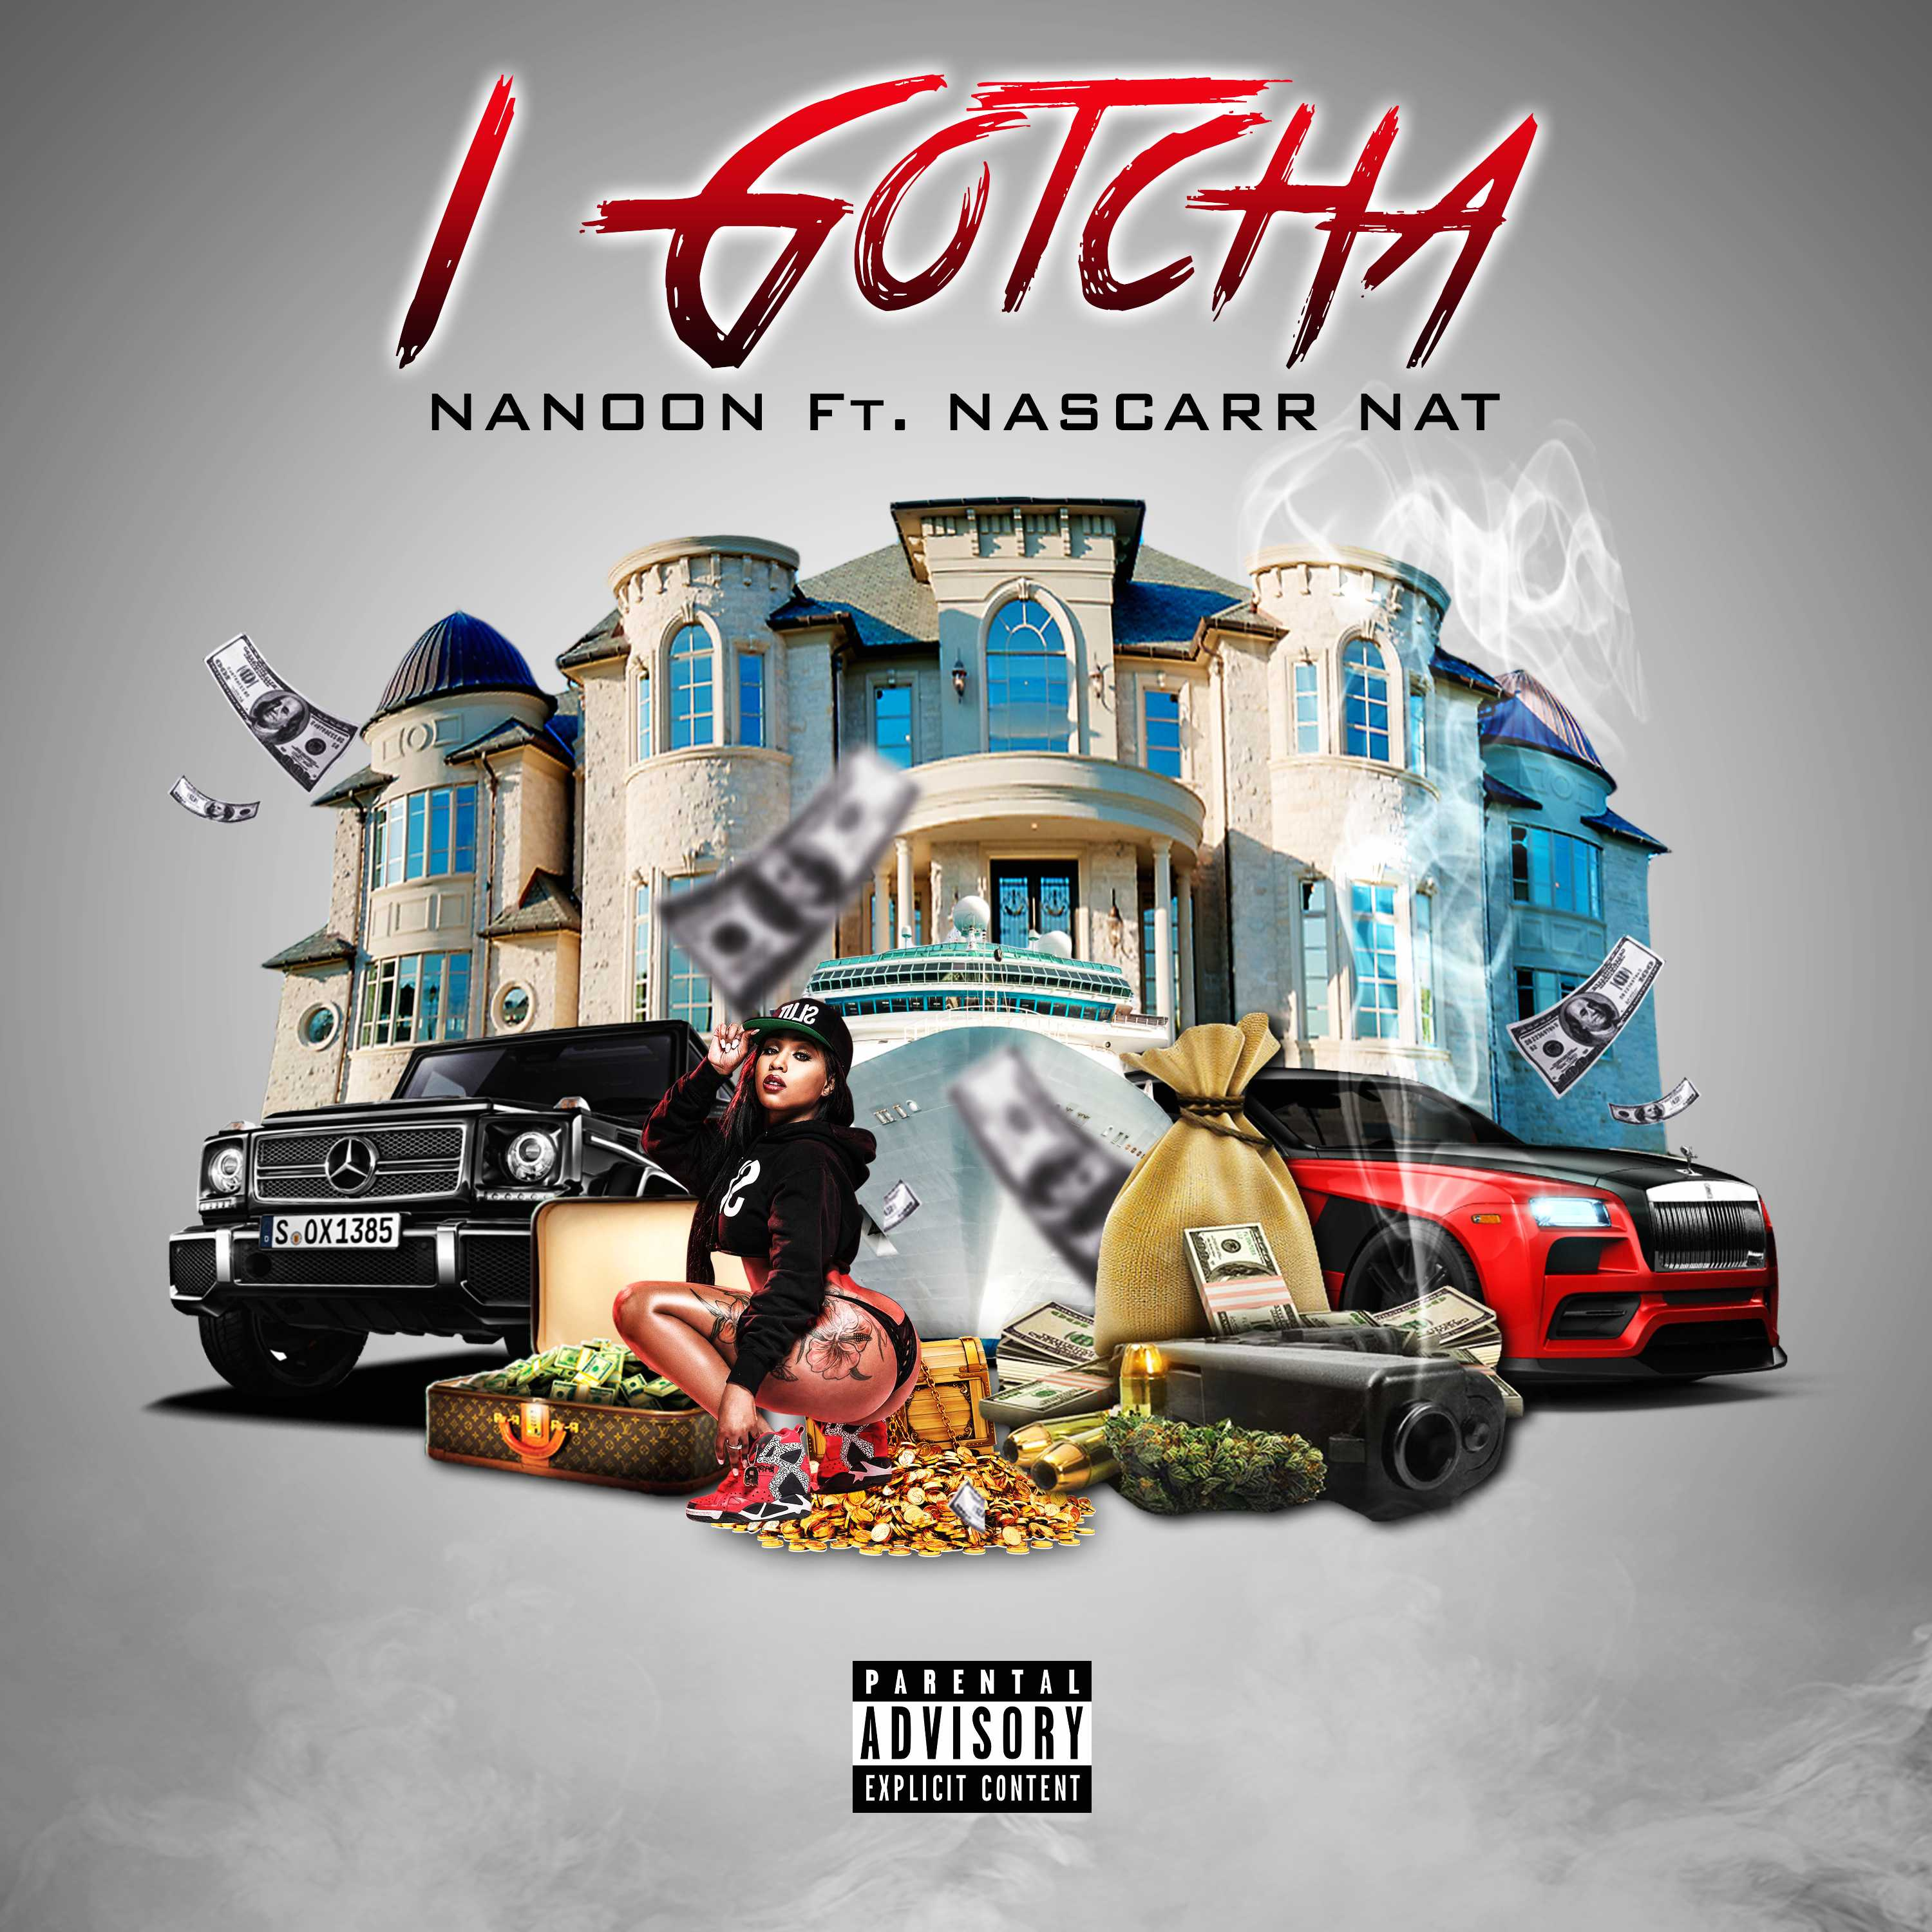 Nanoon Ft. Nascarr Nat | I Gotcha [Audio]